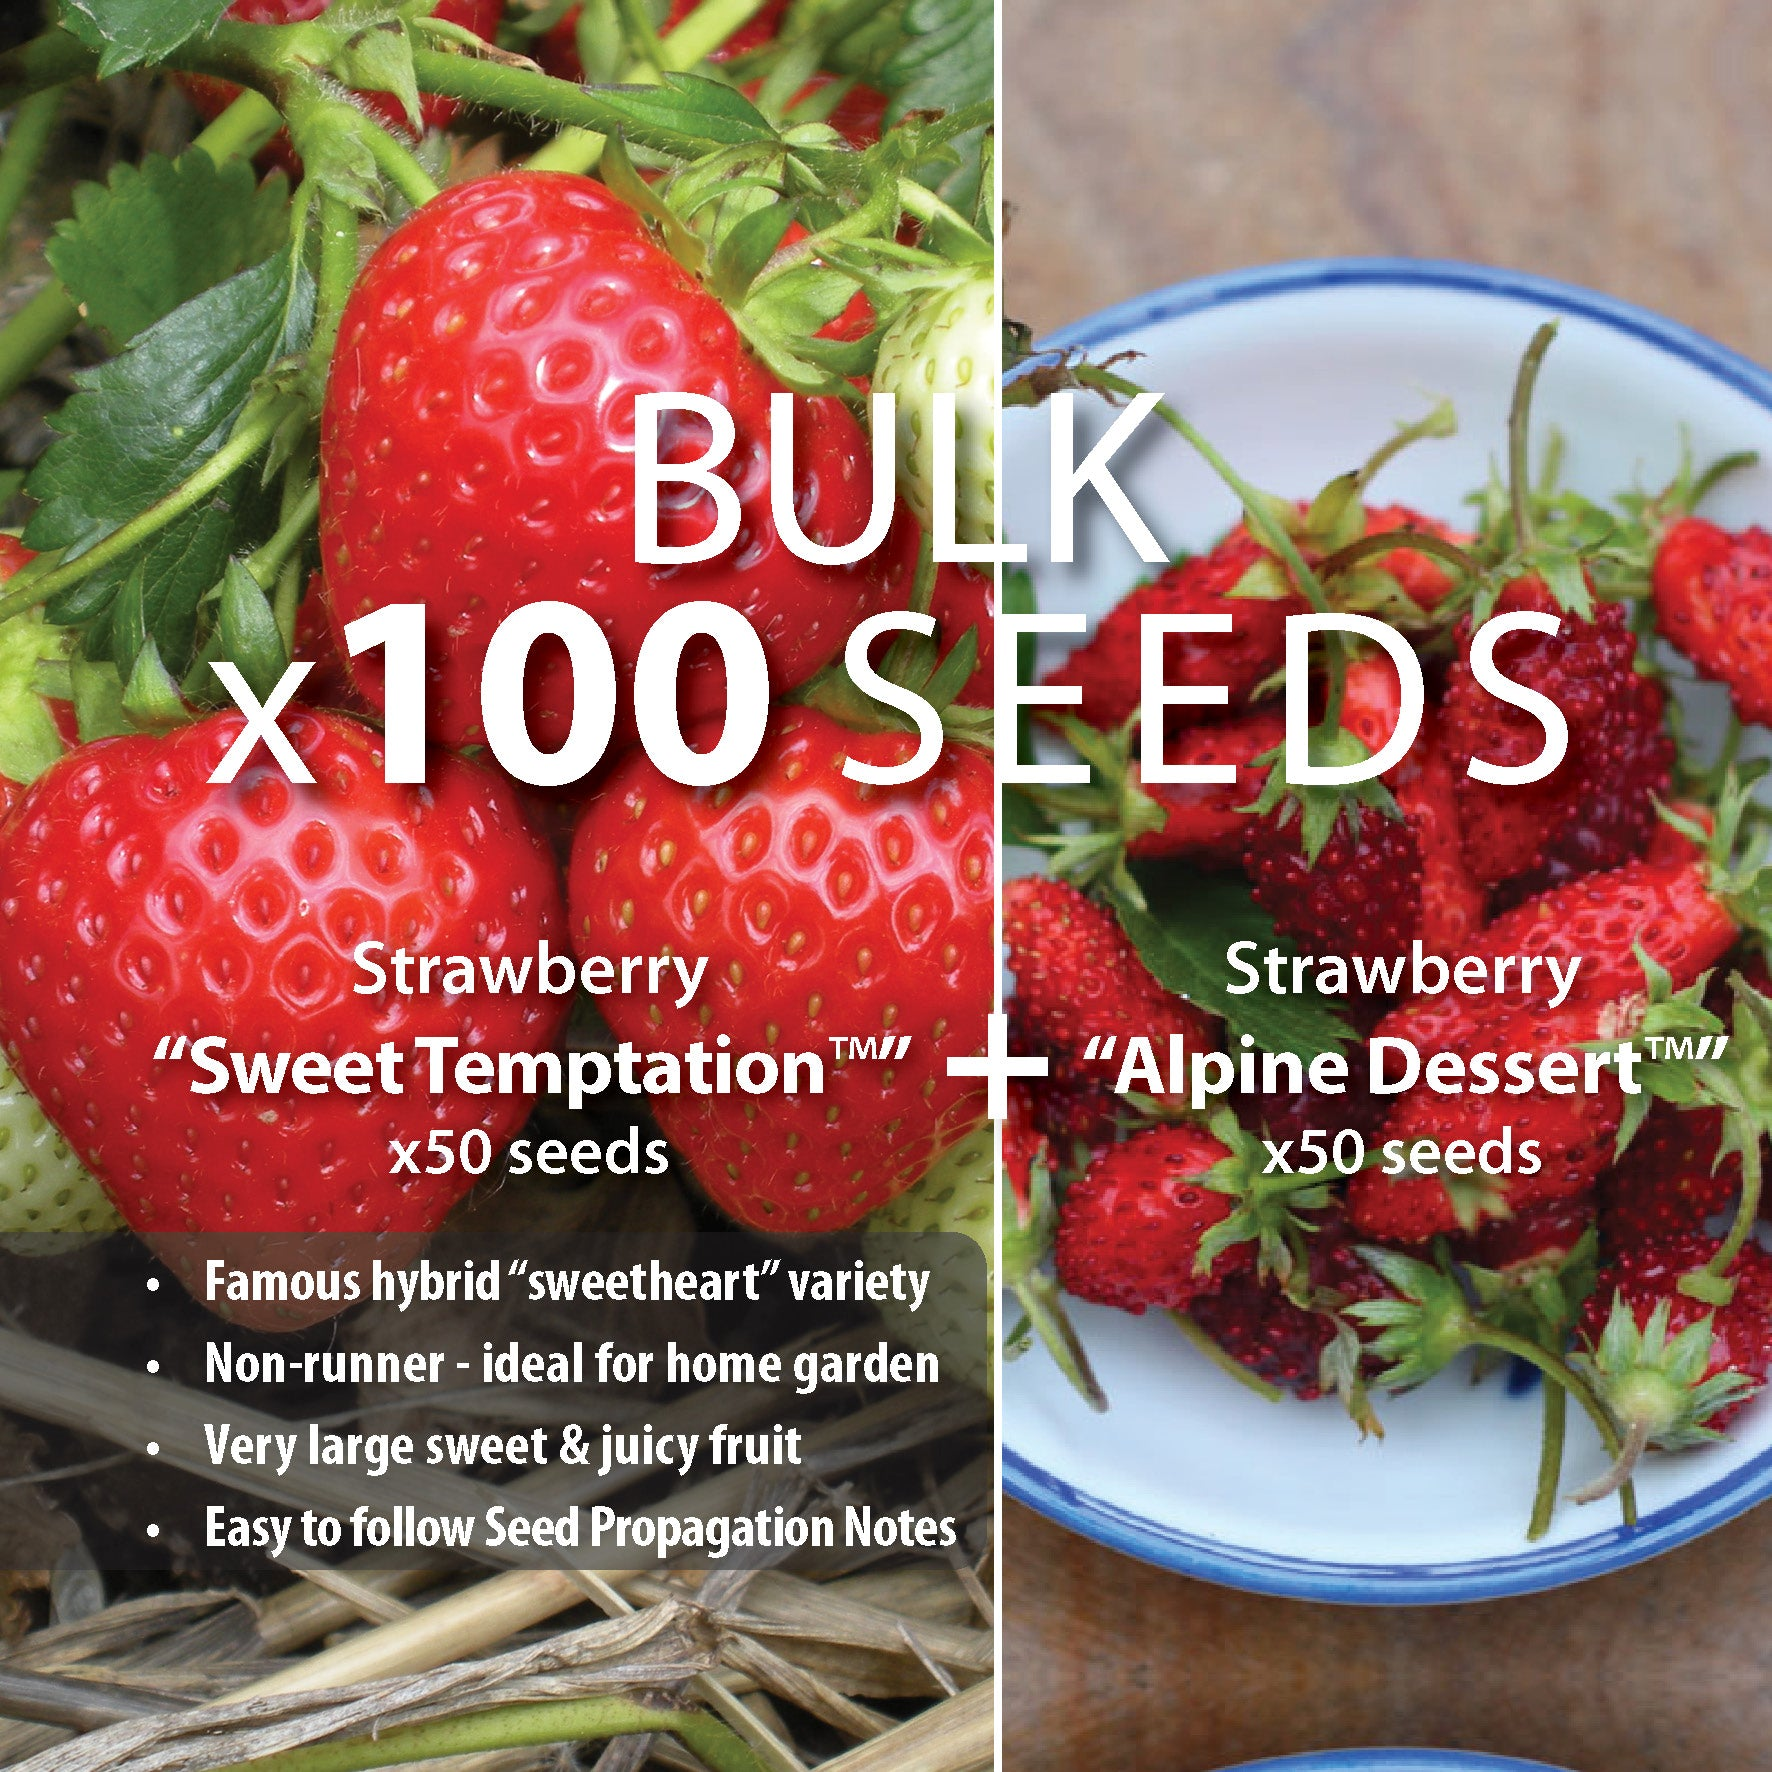 STRAWBERRY BULK Temptation Pack x100 Seeds. Heavy yielding, 2 great varieties